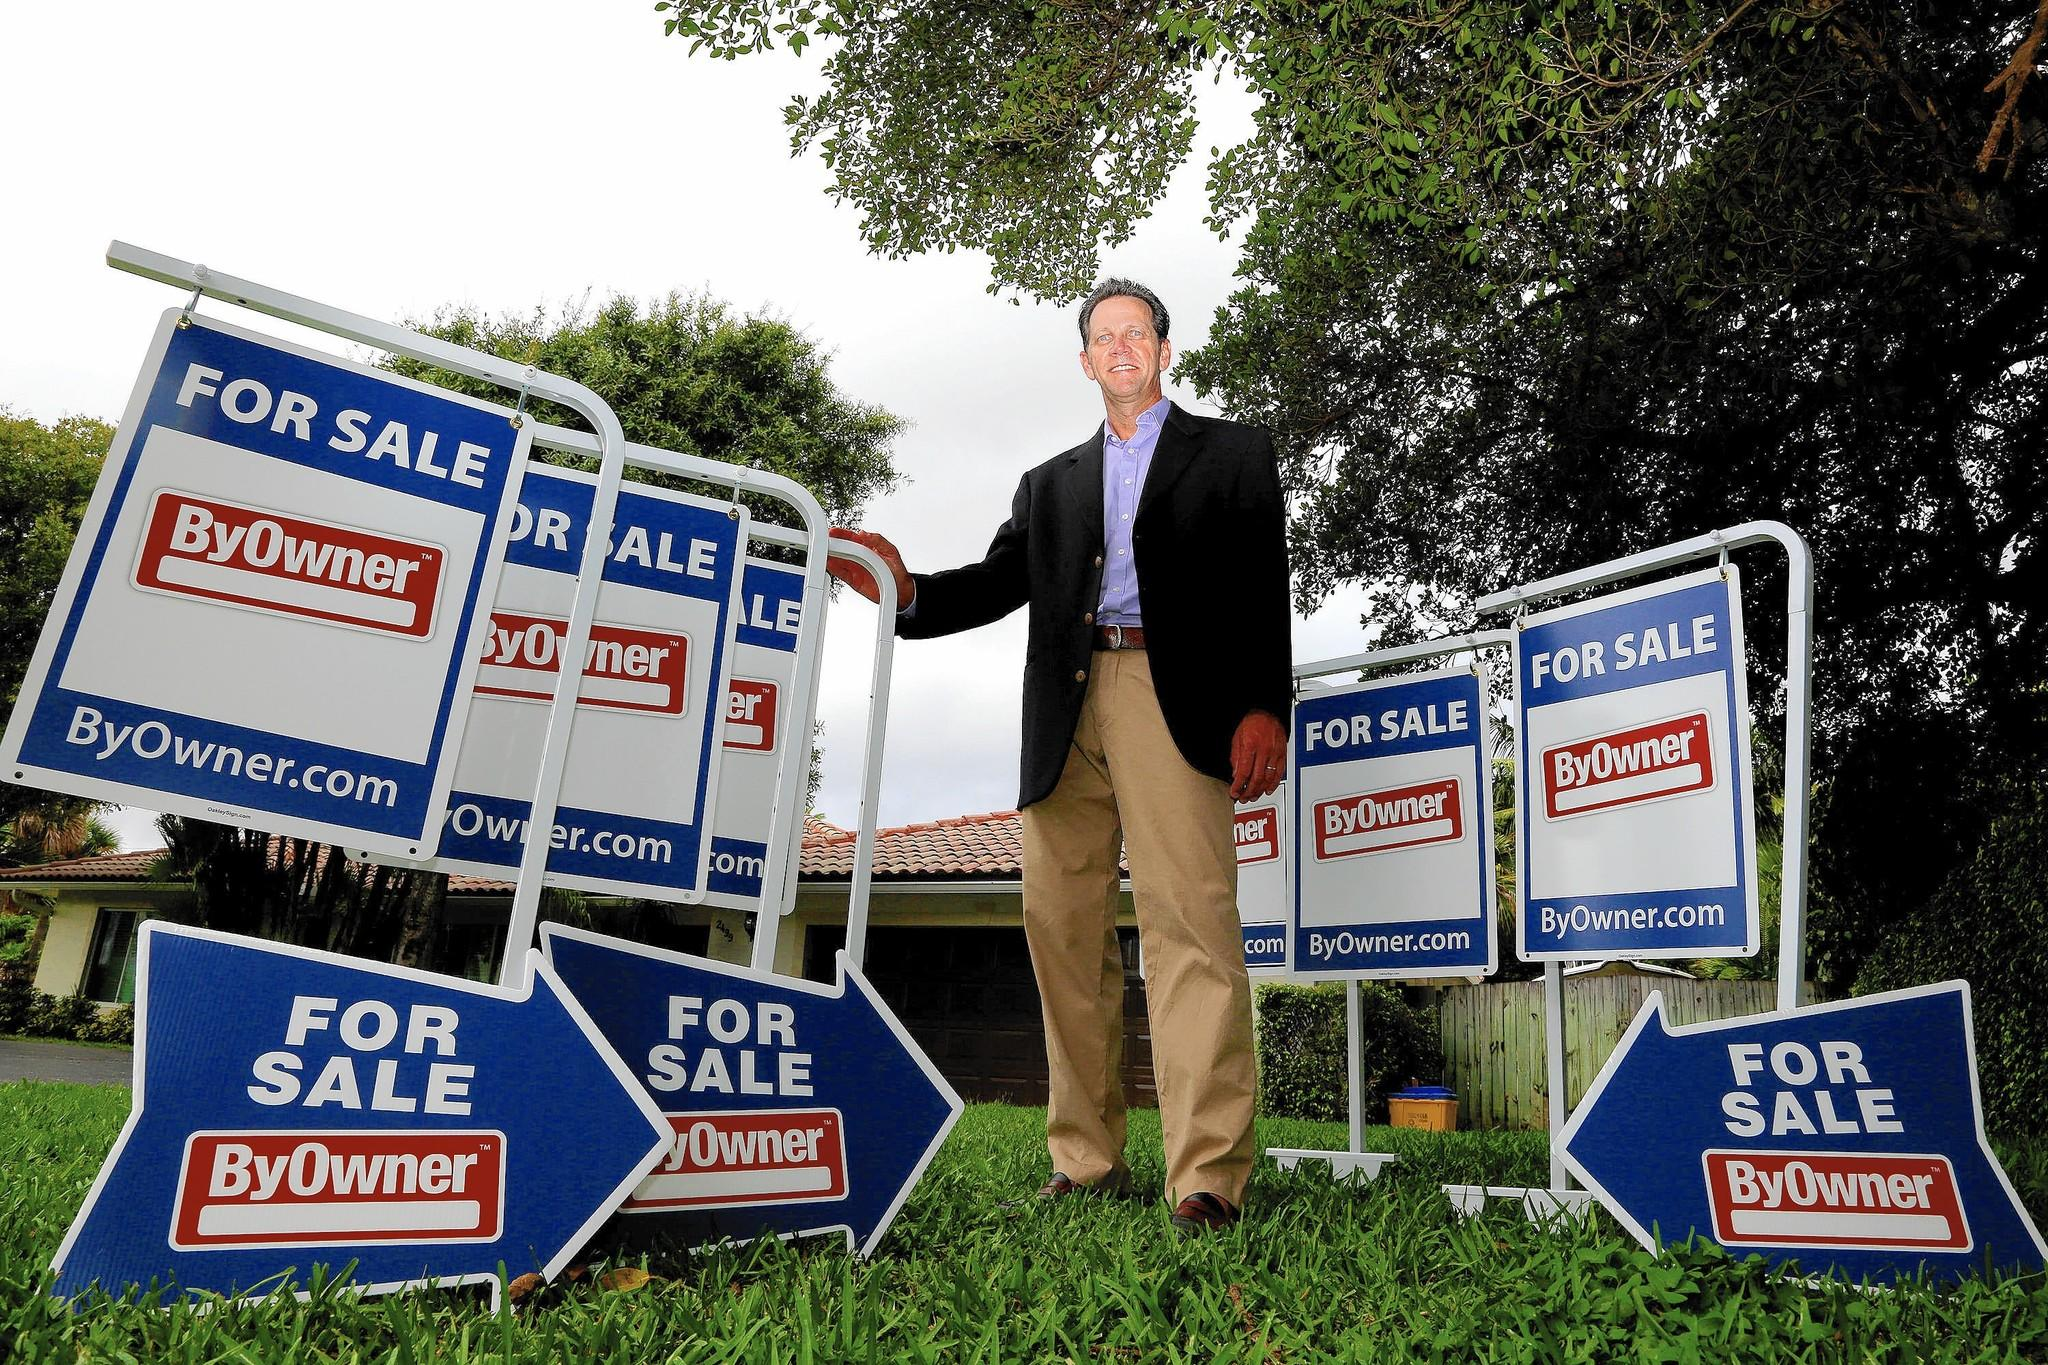 Greg Sullivan, President of ByOwner.com, is shown in the front yard of his Boca Raton home on Thursday, Sept. 25, 2014.